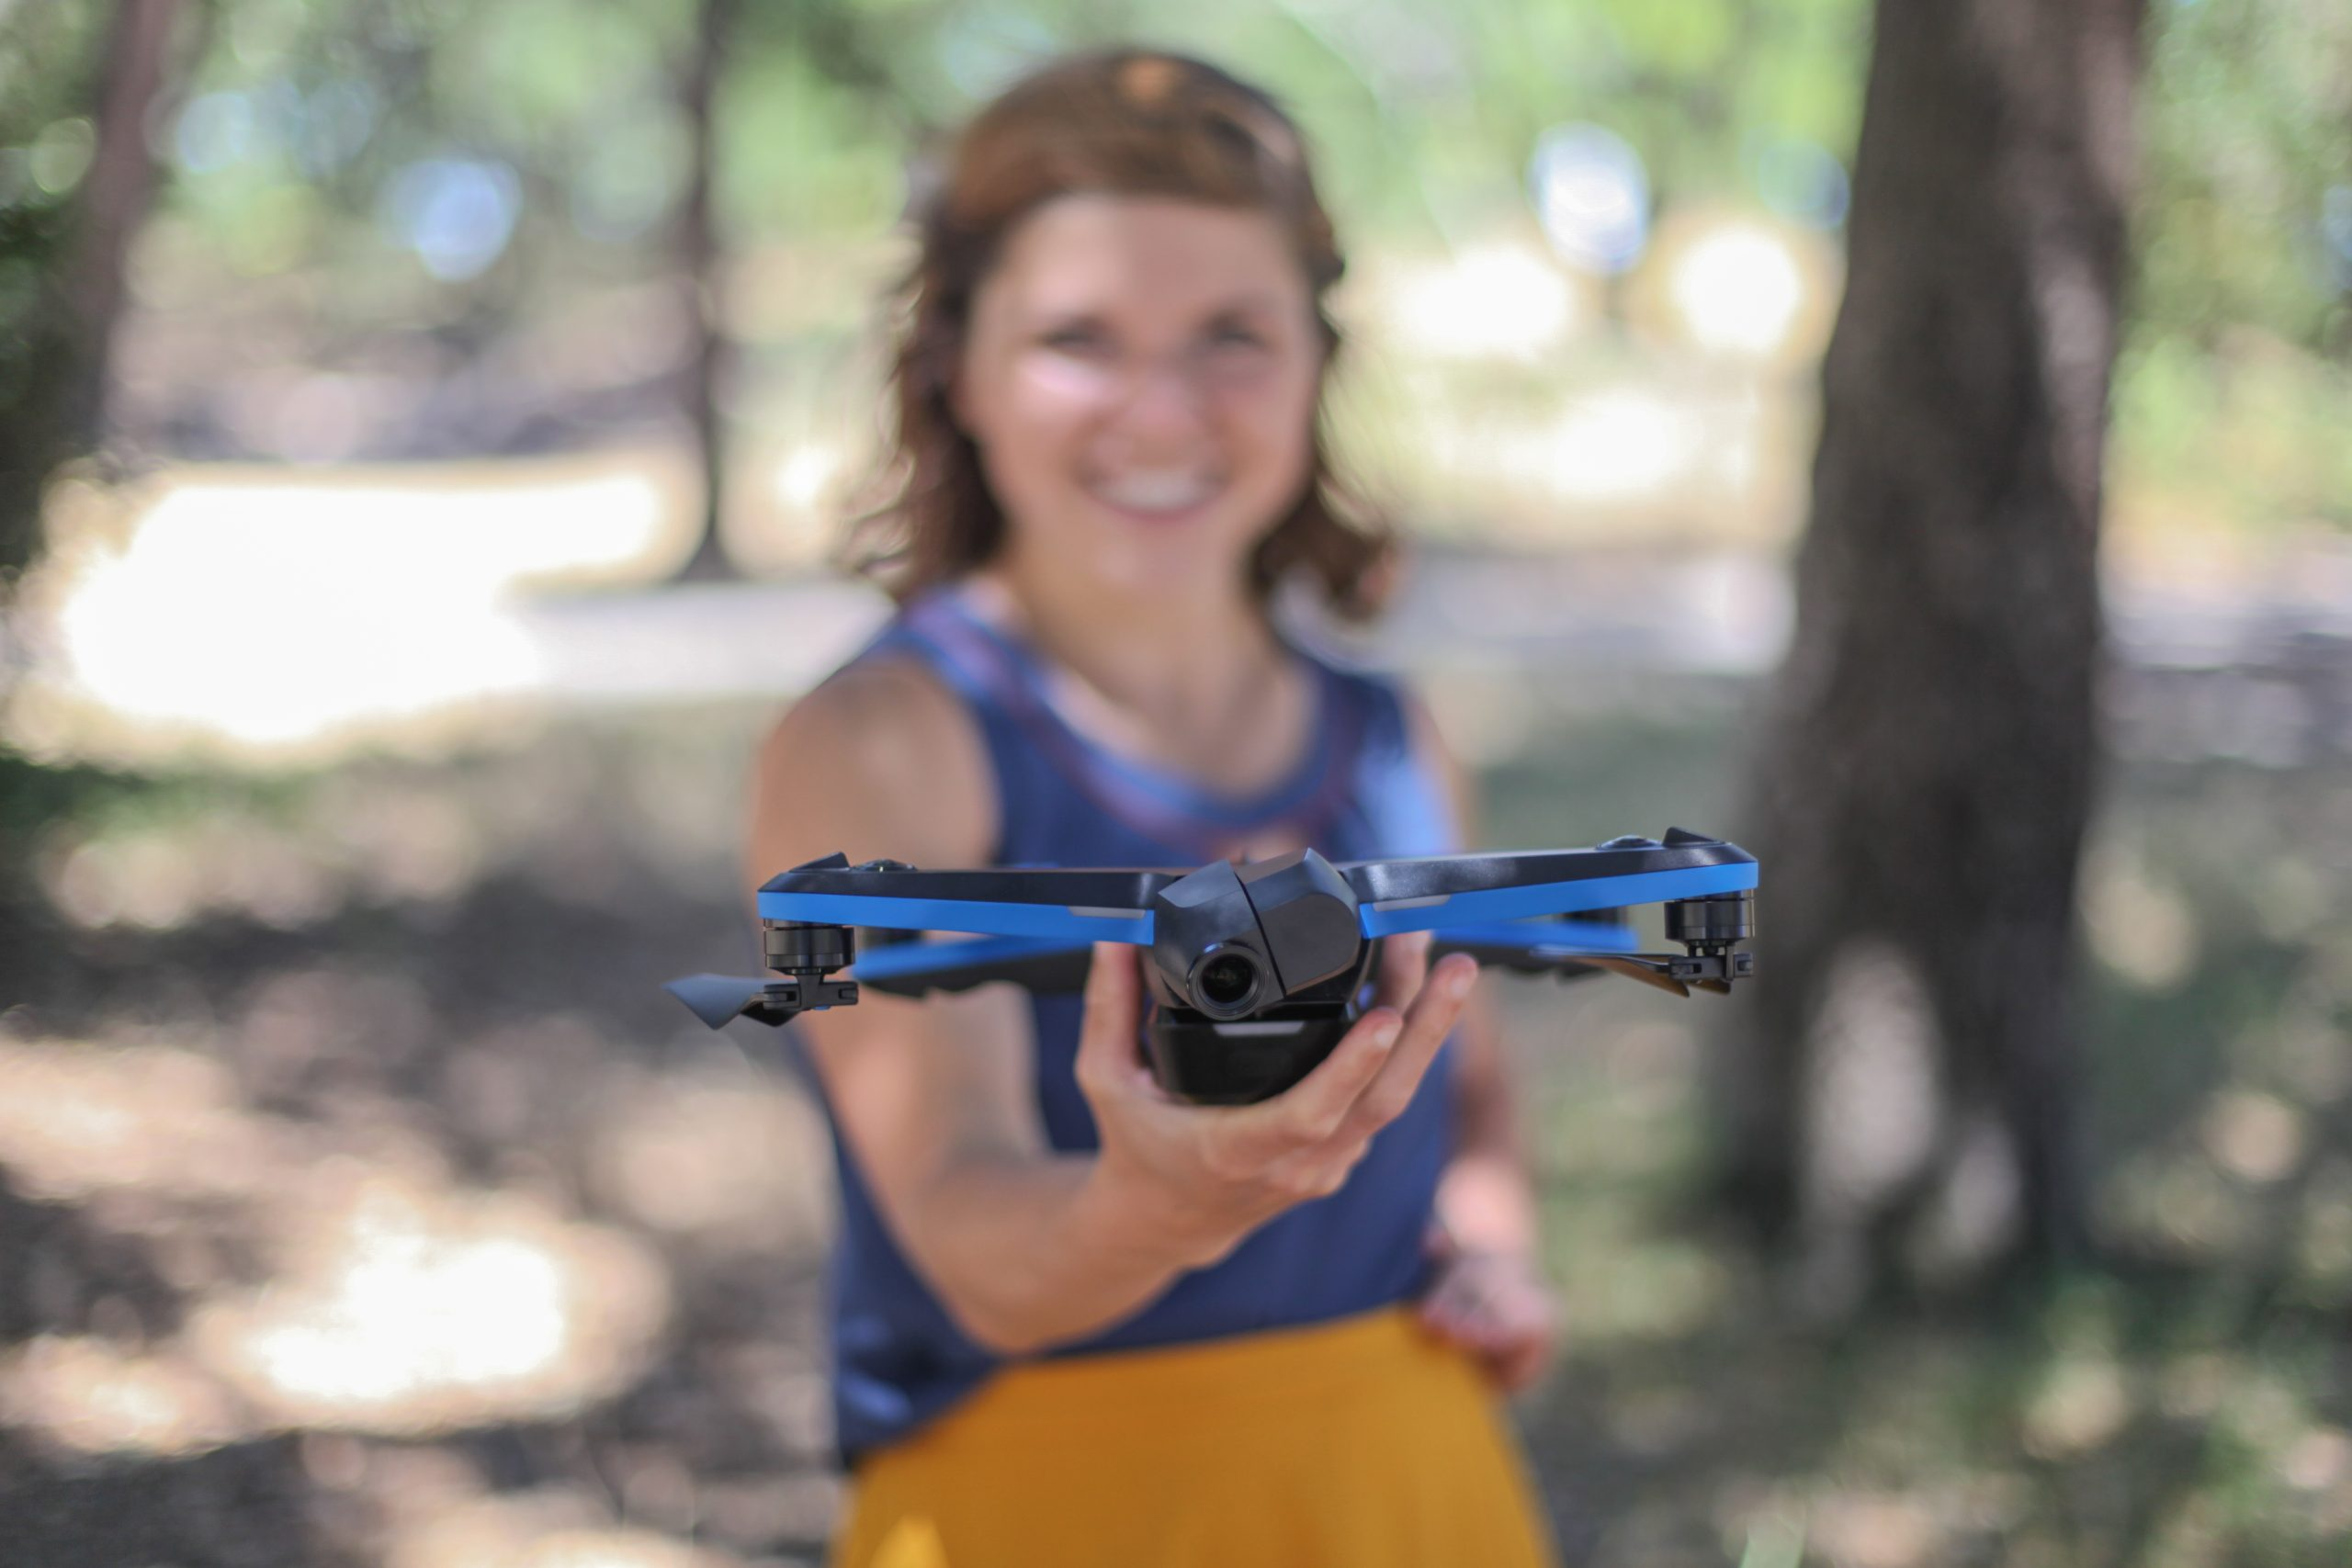 Videos - The Drone Girl